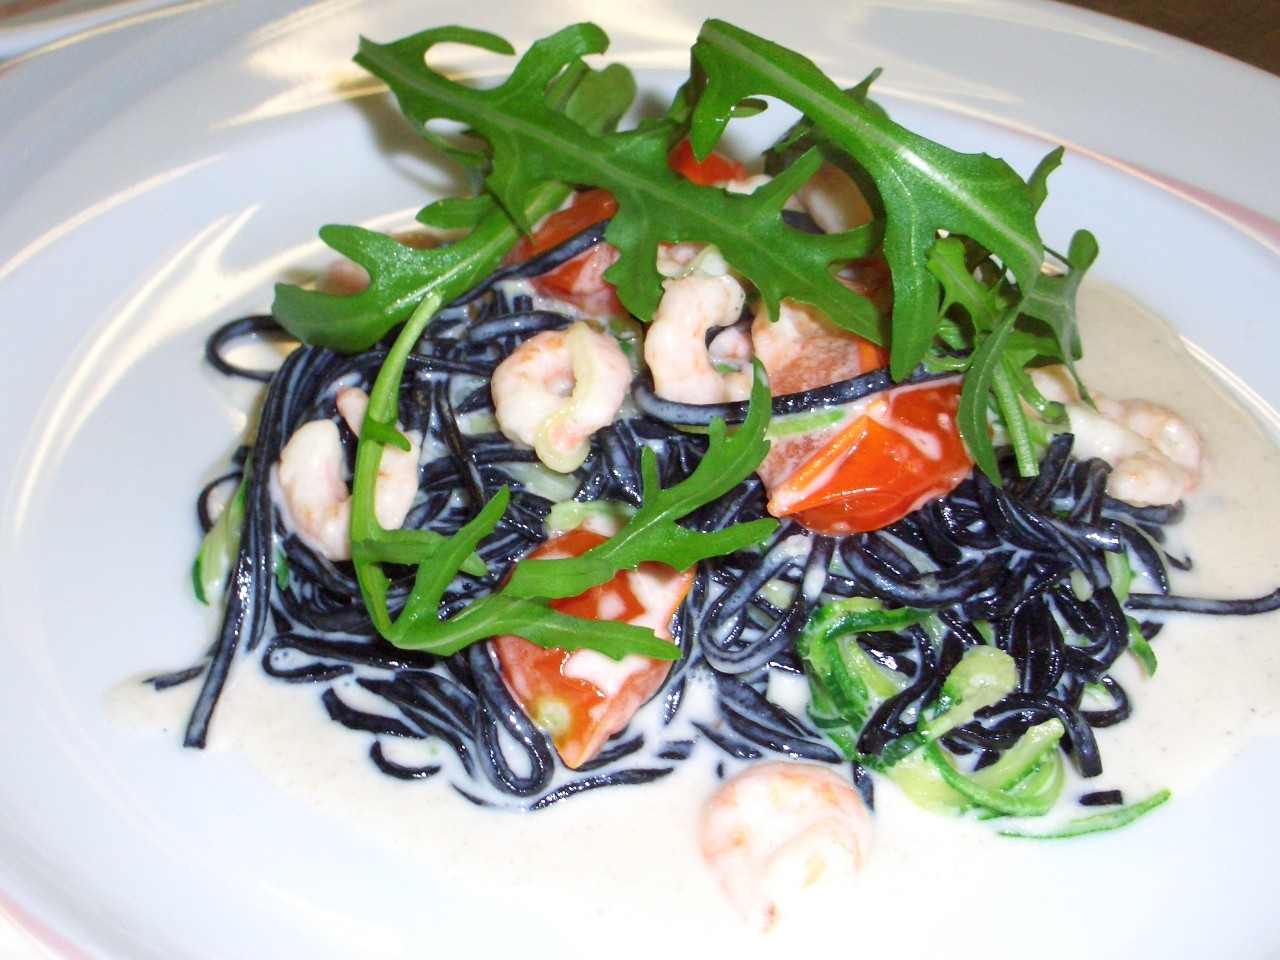 Tagliatelle of squid ink with prawns